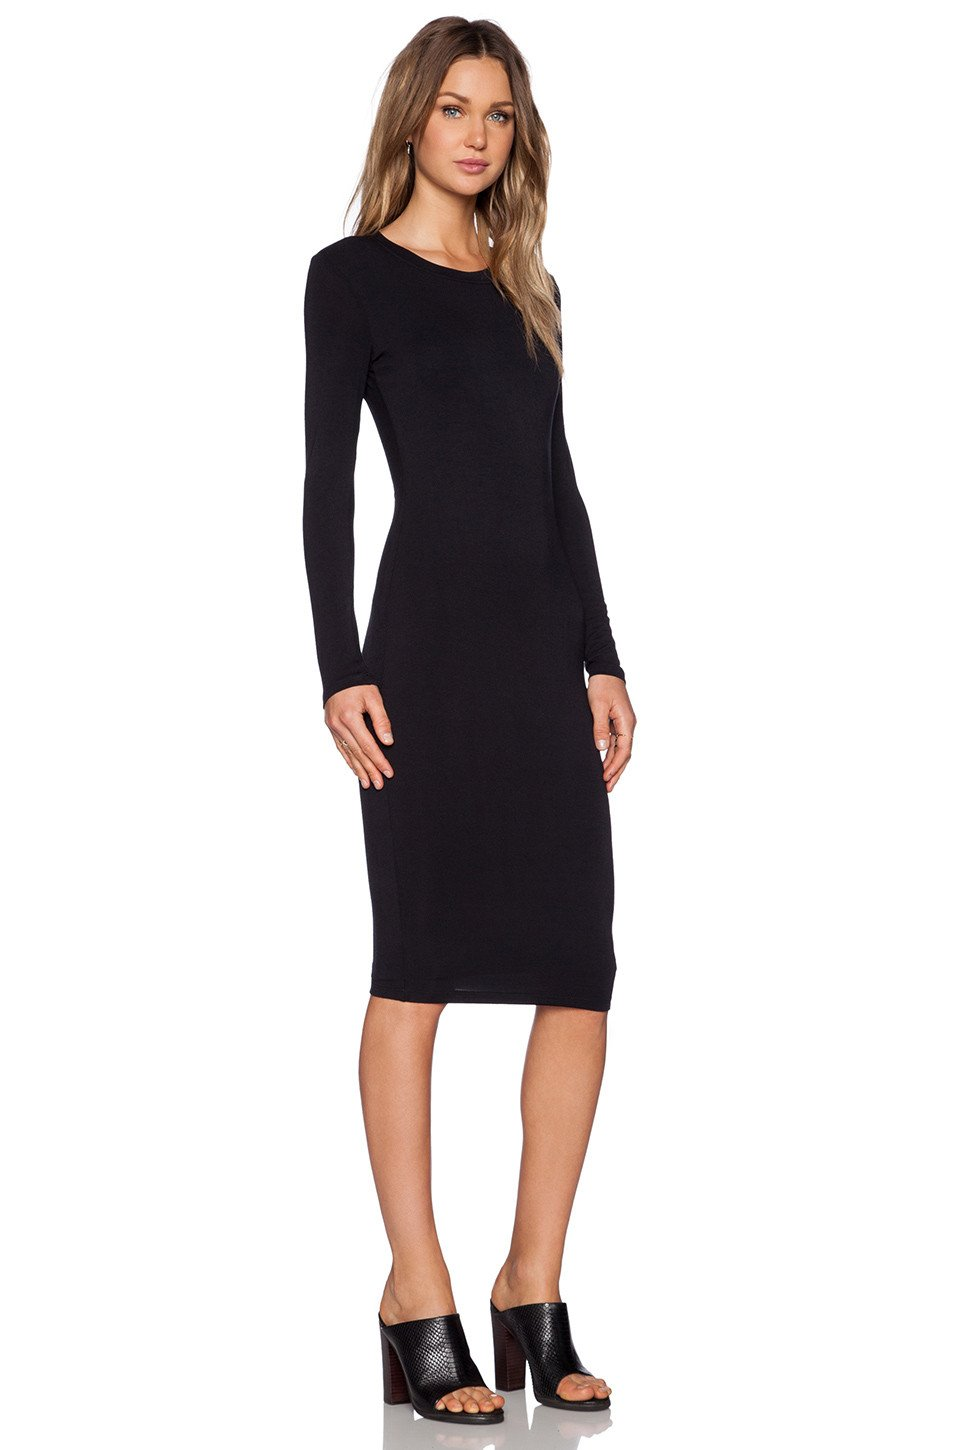 98f327787d7d Long Sleeve Midi Dress -Black – Reina Valentina